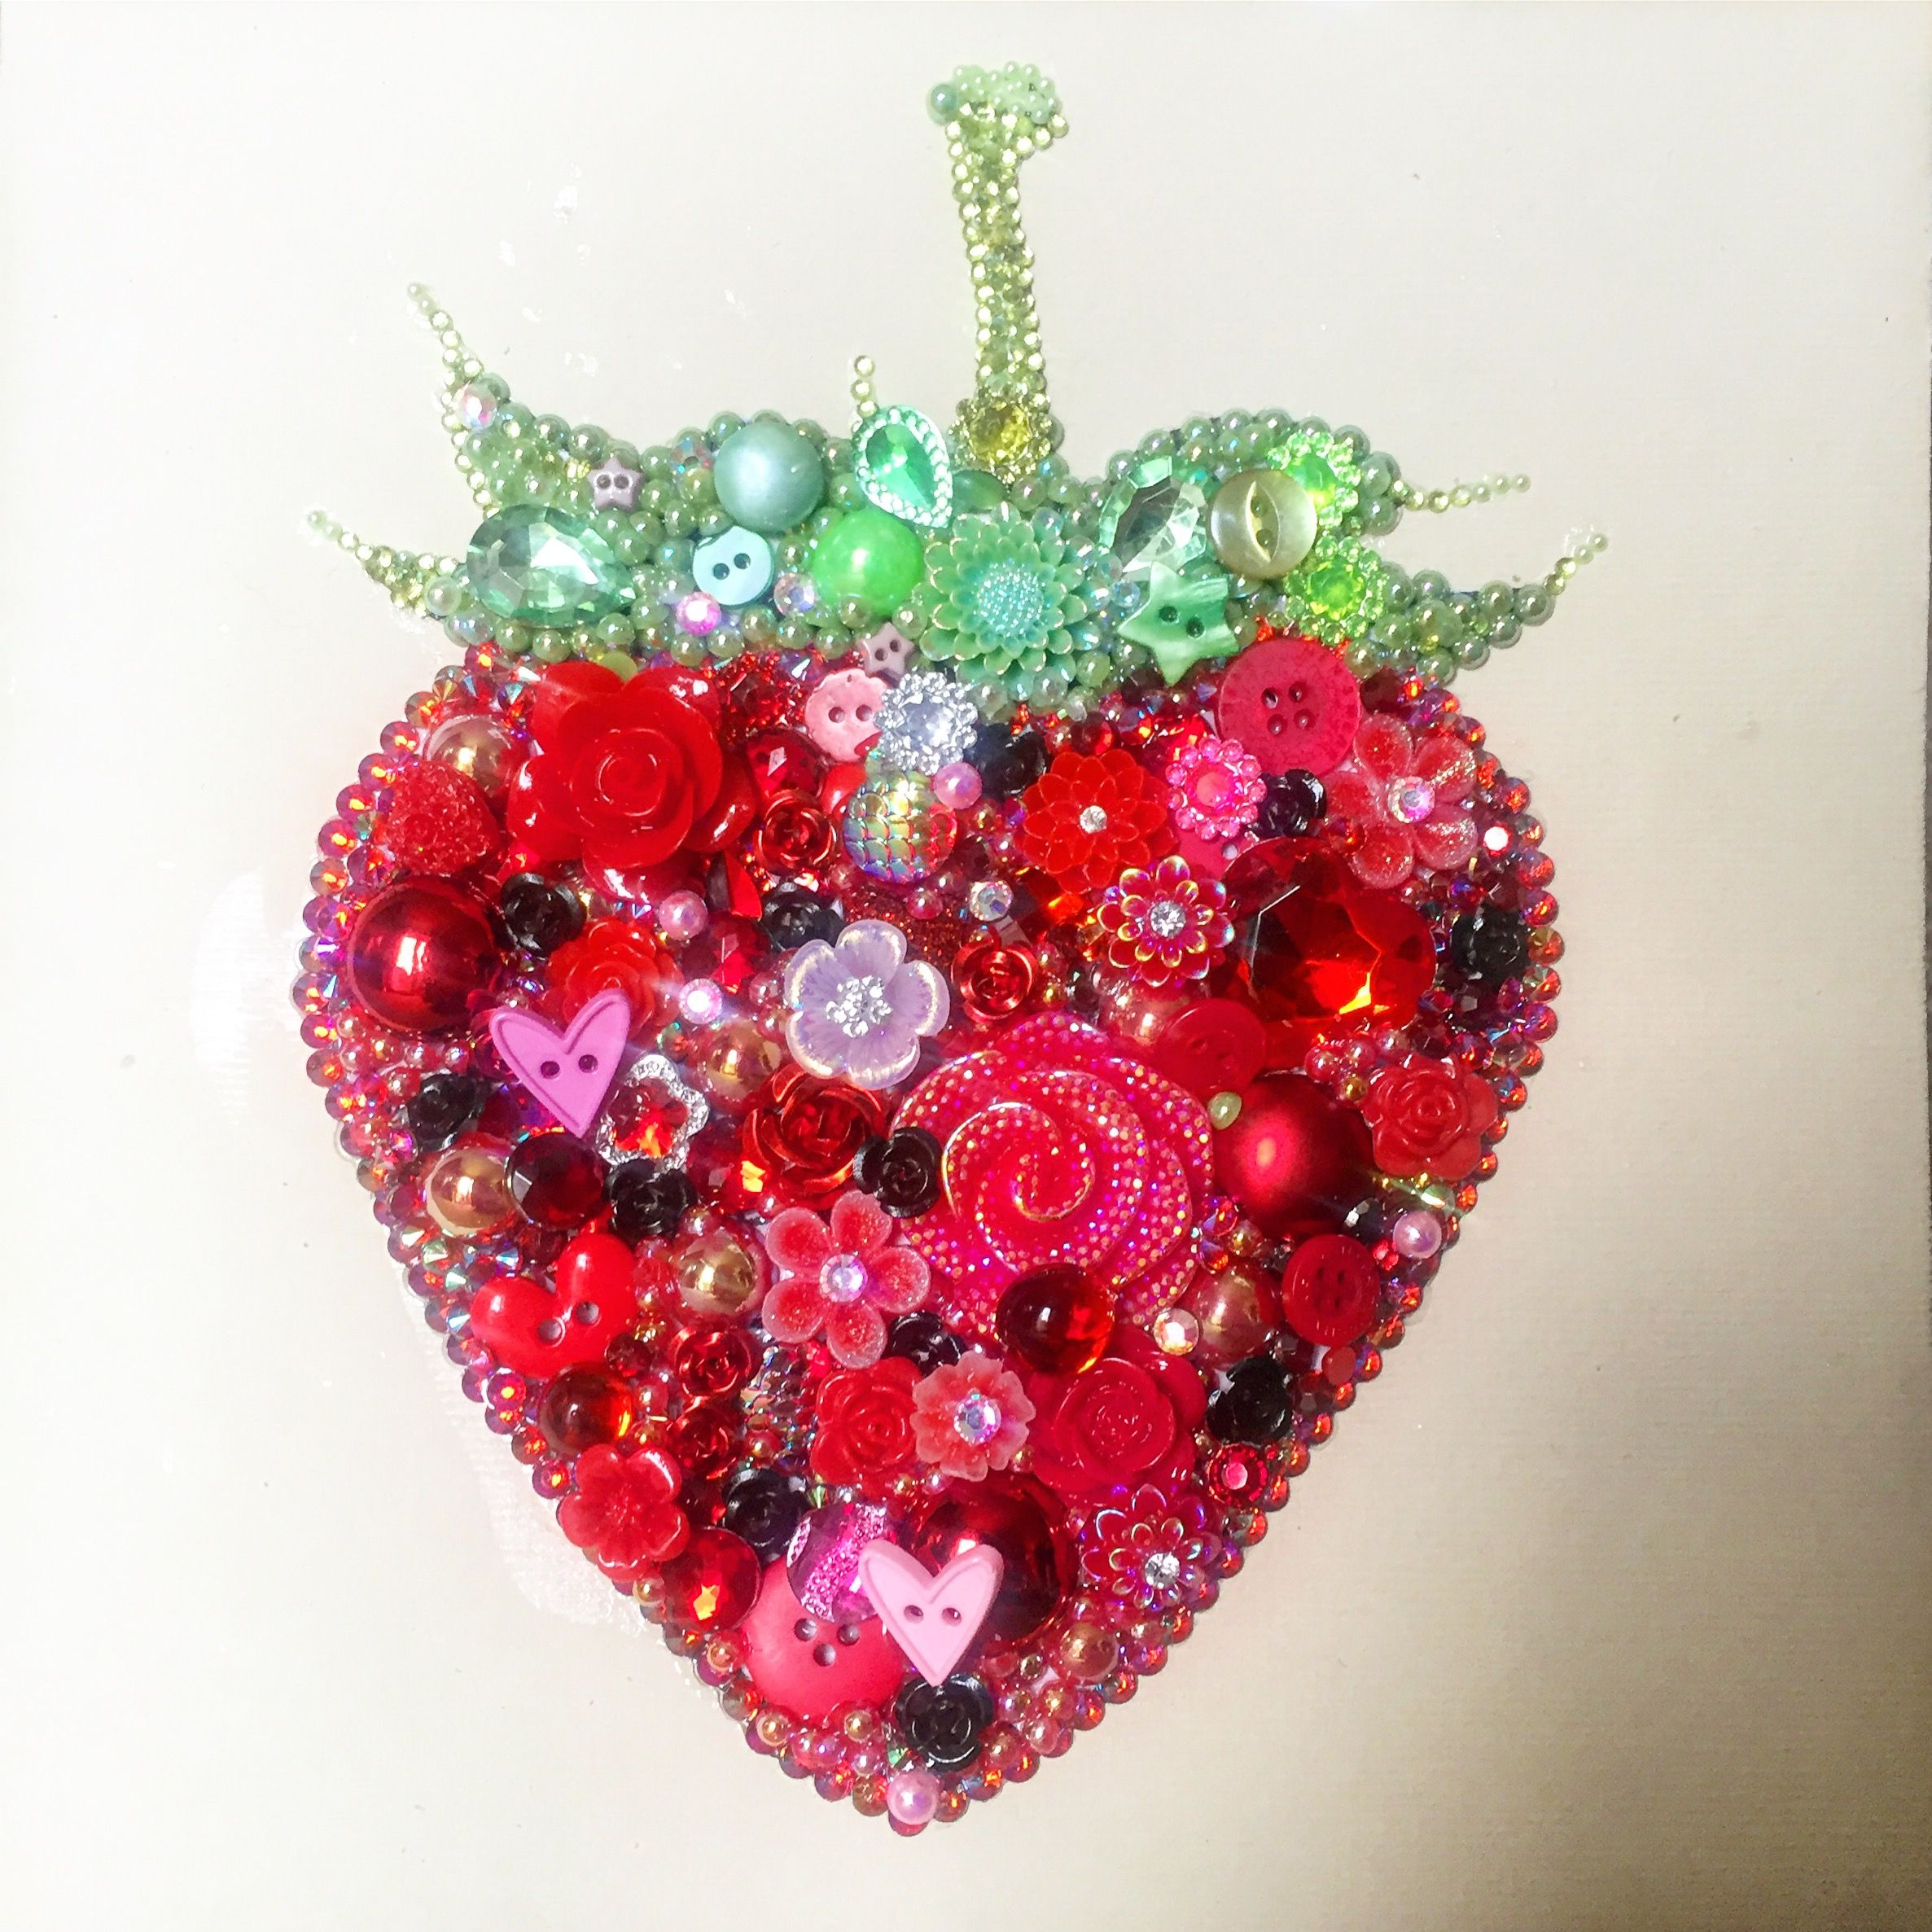 Strawberry christmas ornaments - Strawberry Button And Mixed Media Art On Canvas